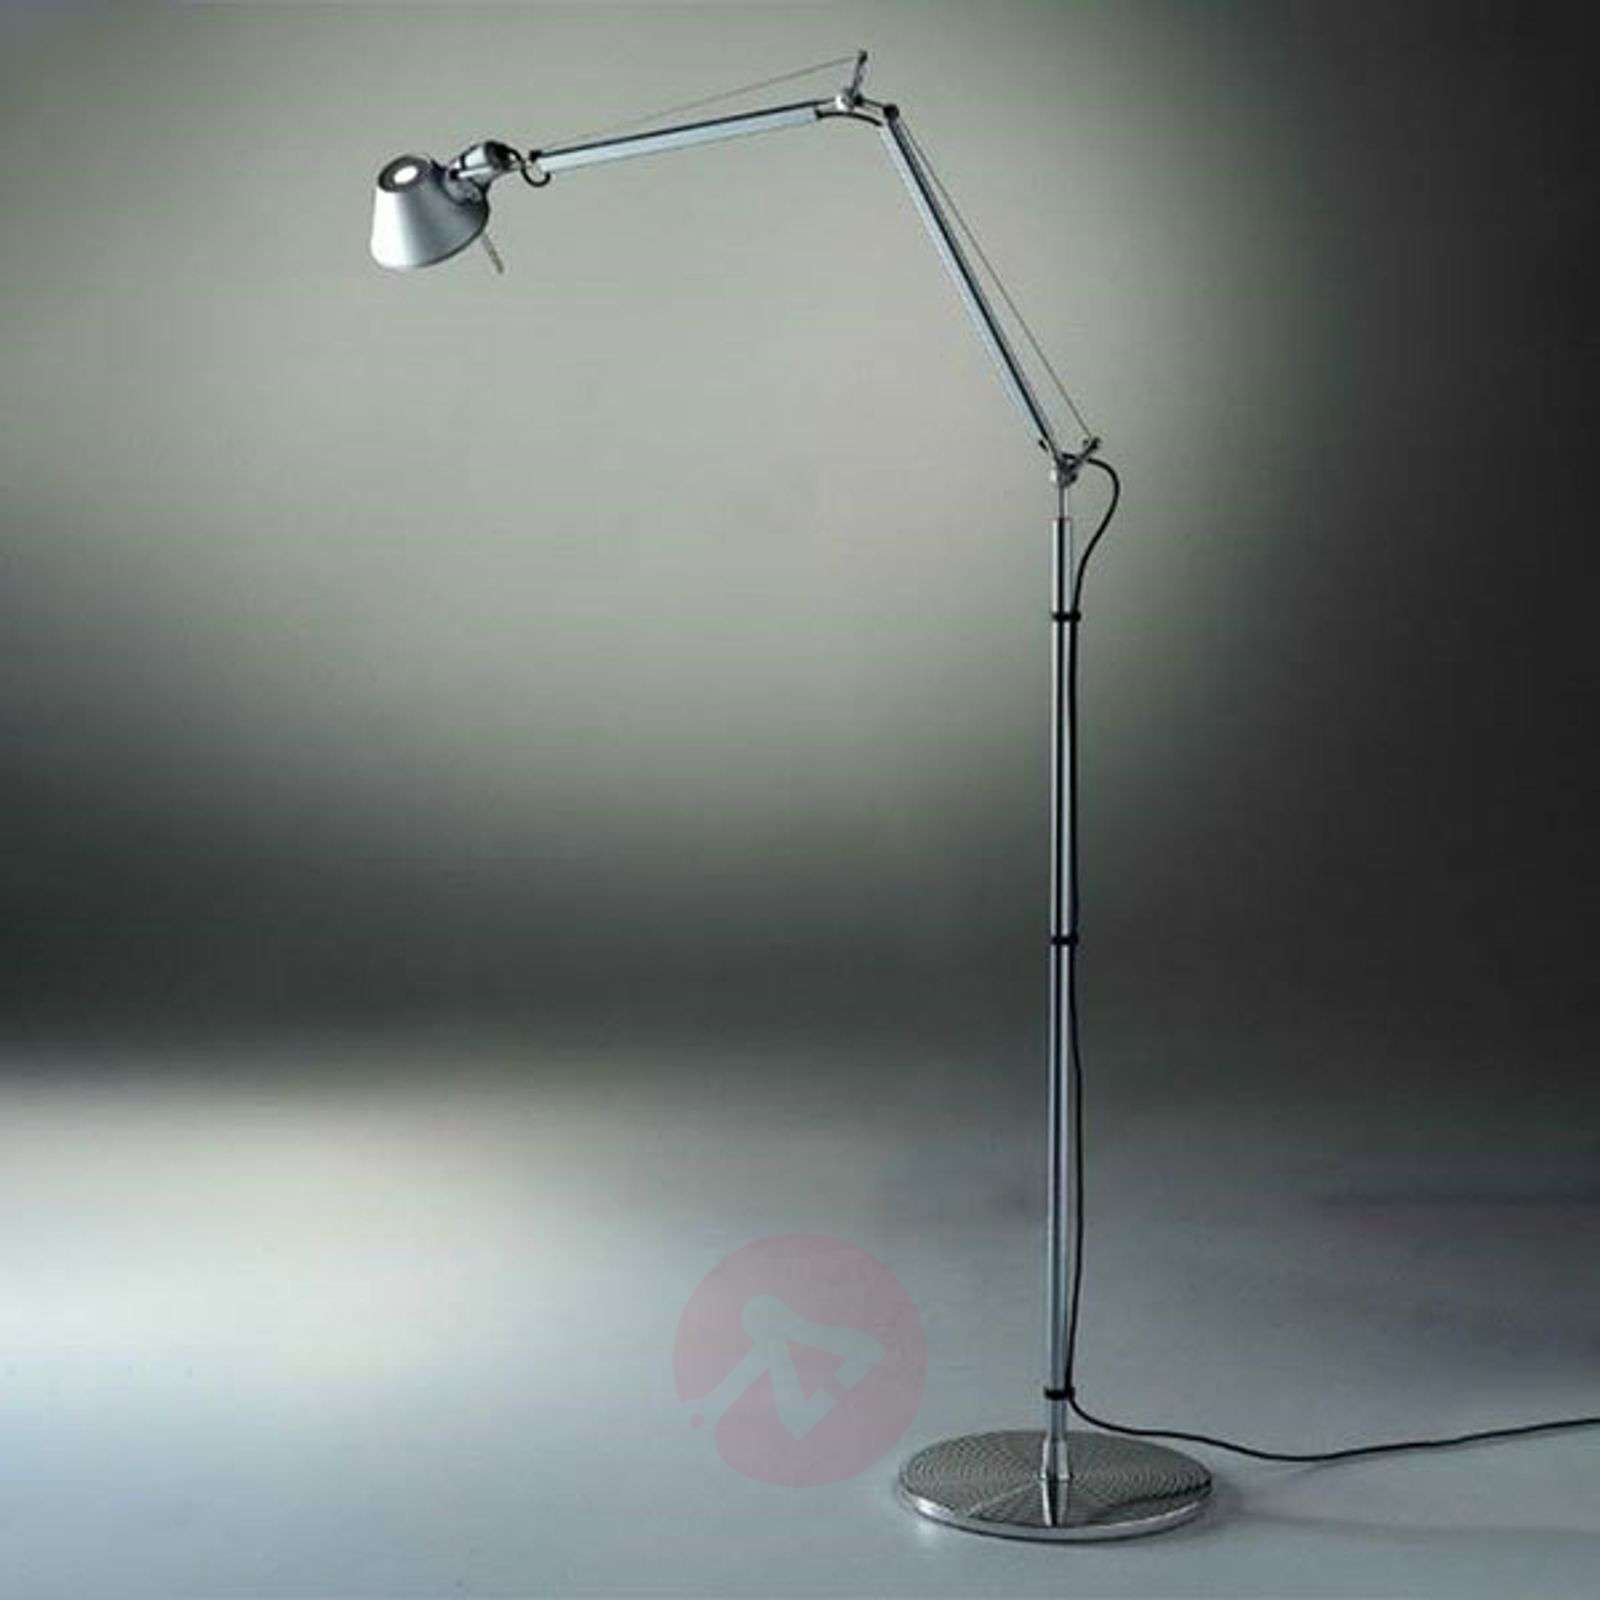 Artemide Tolomeo LED-lattiavalaisin tunable white-1060235-06